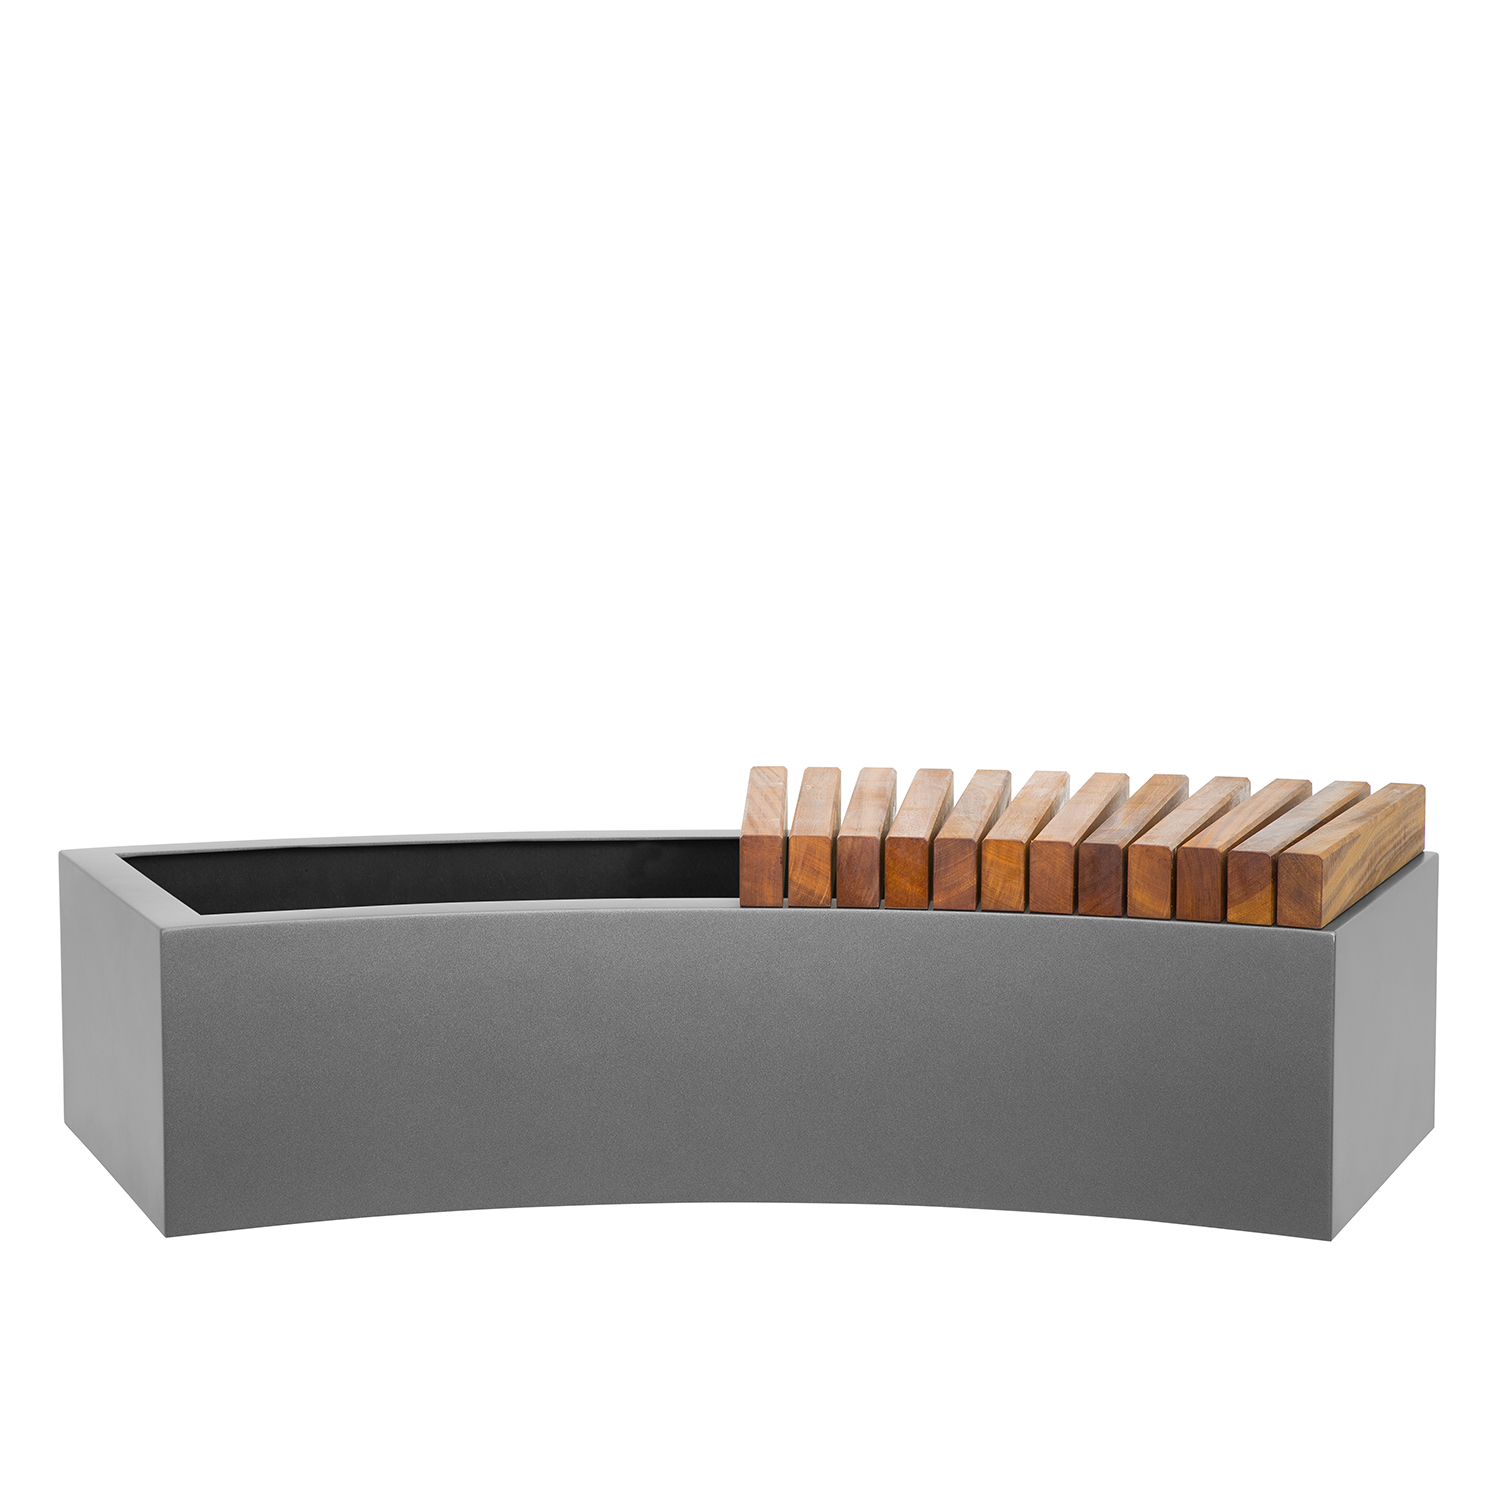 Curved Trough Quality Grp Planter By Europlanters